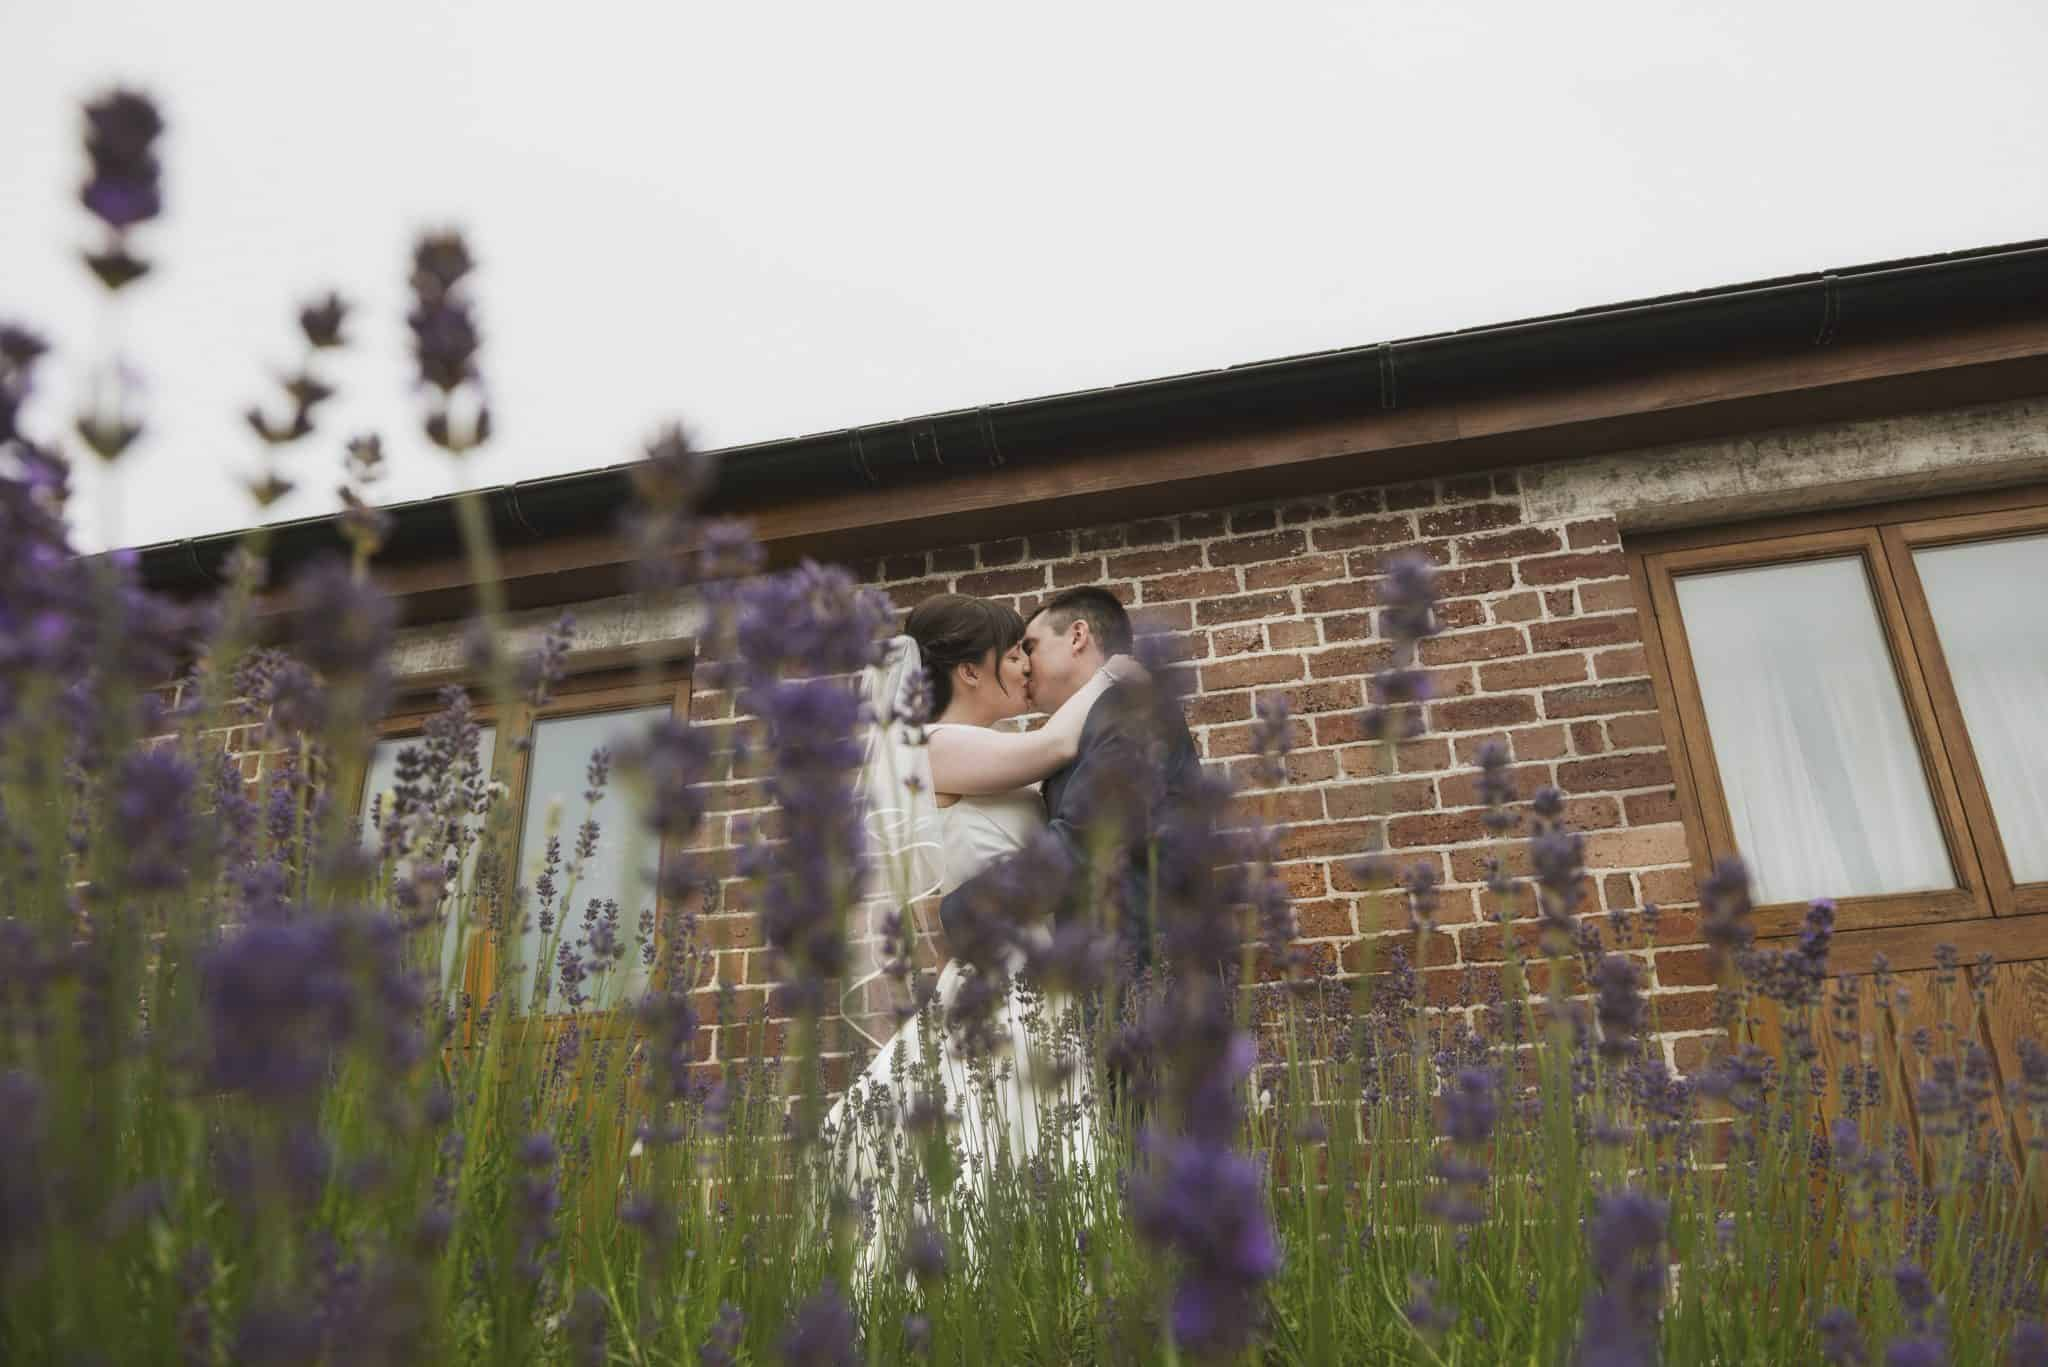 Bride & Groom kiss in front of lavender